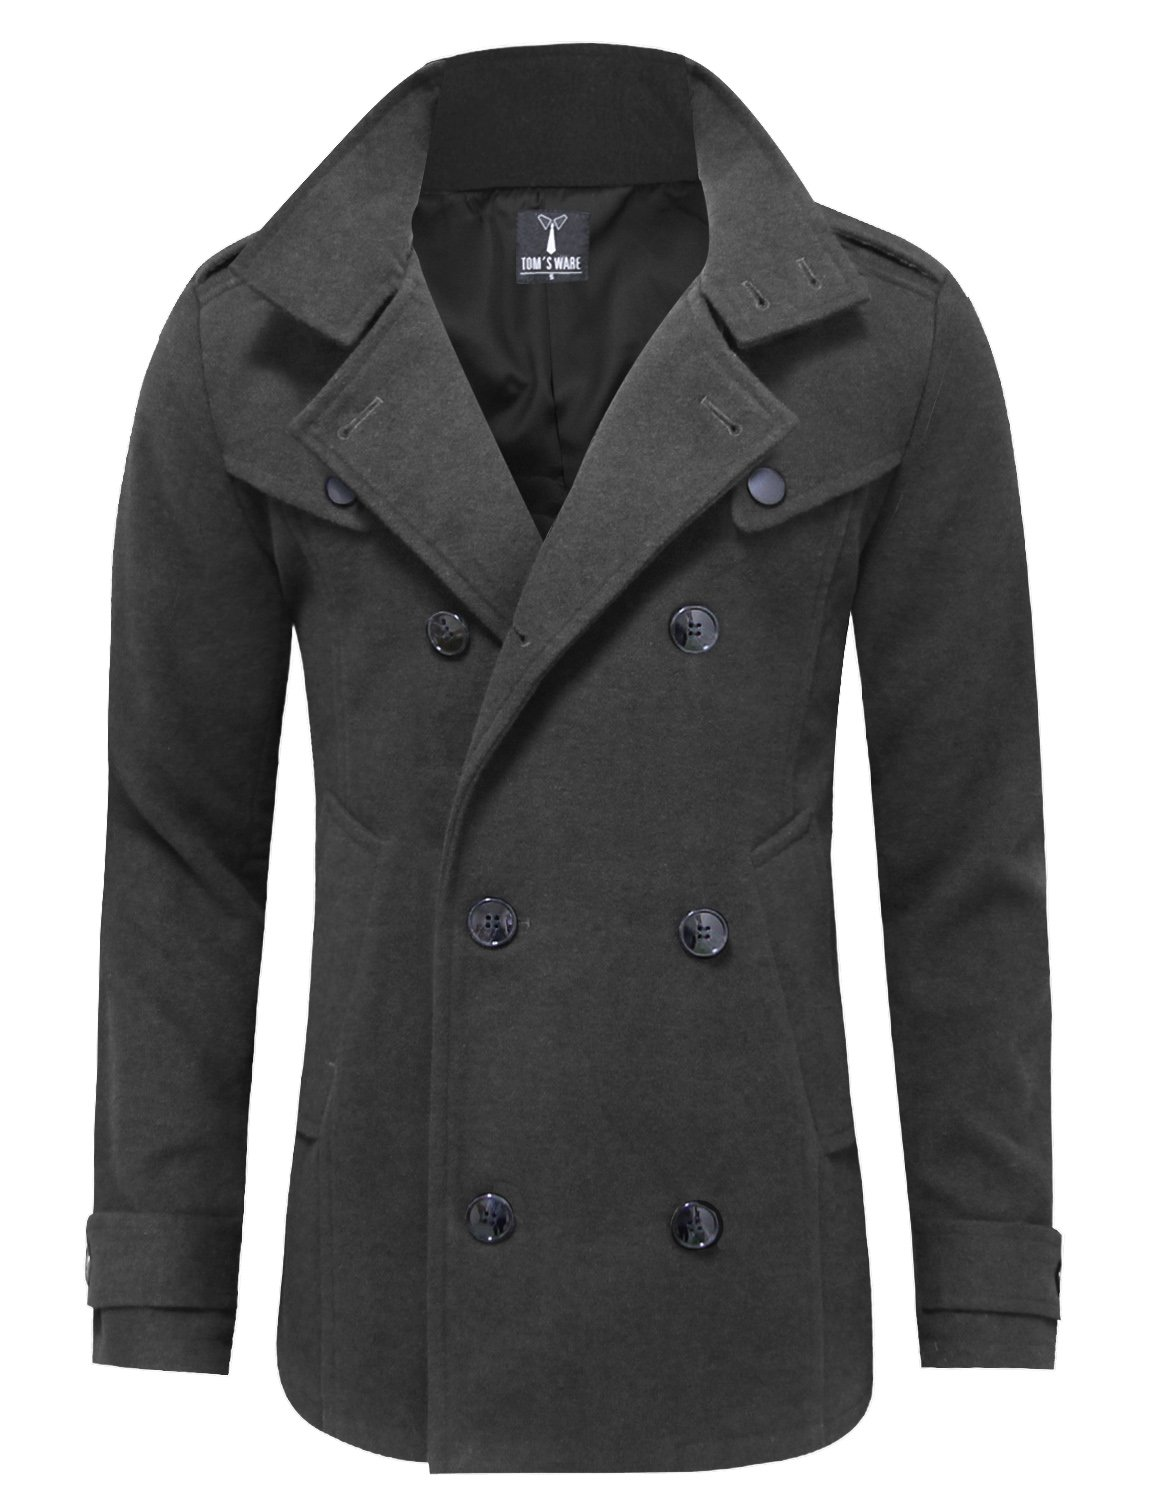 Tom's Ware Mens Stylish Fashion Classic Wool Double Breasted Pea Coat TWCC06-CHARCOAL-US L